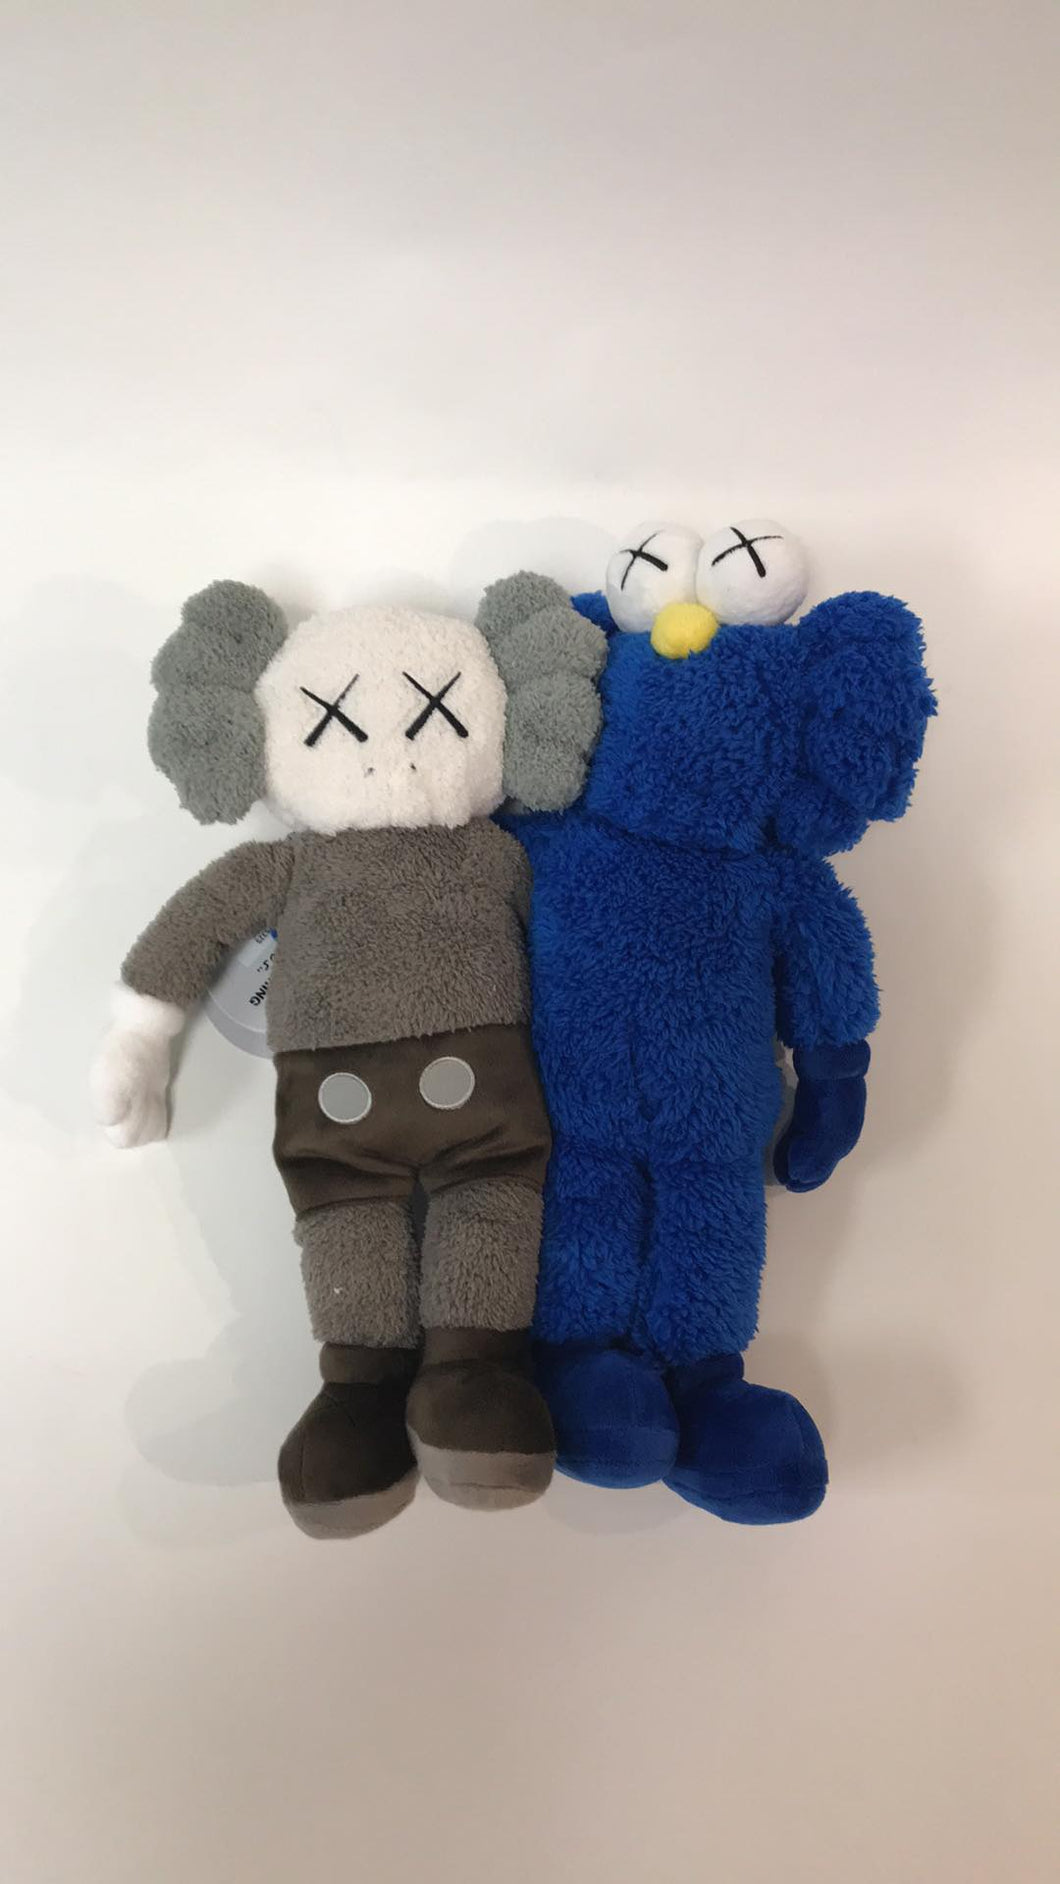 Kaws Seeing Watching Plush